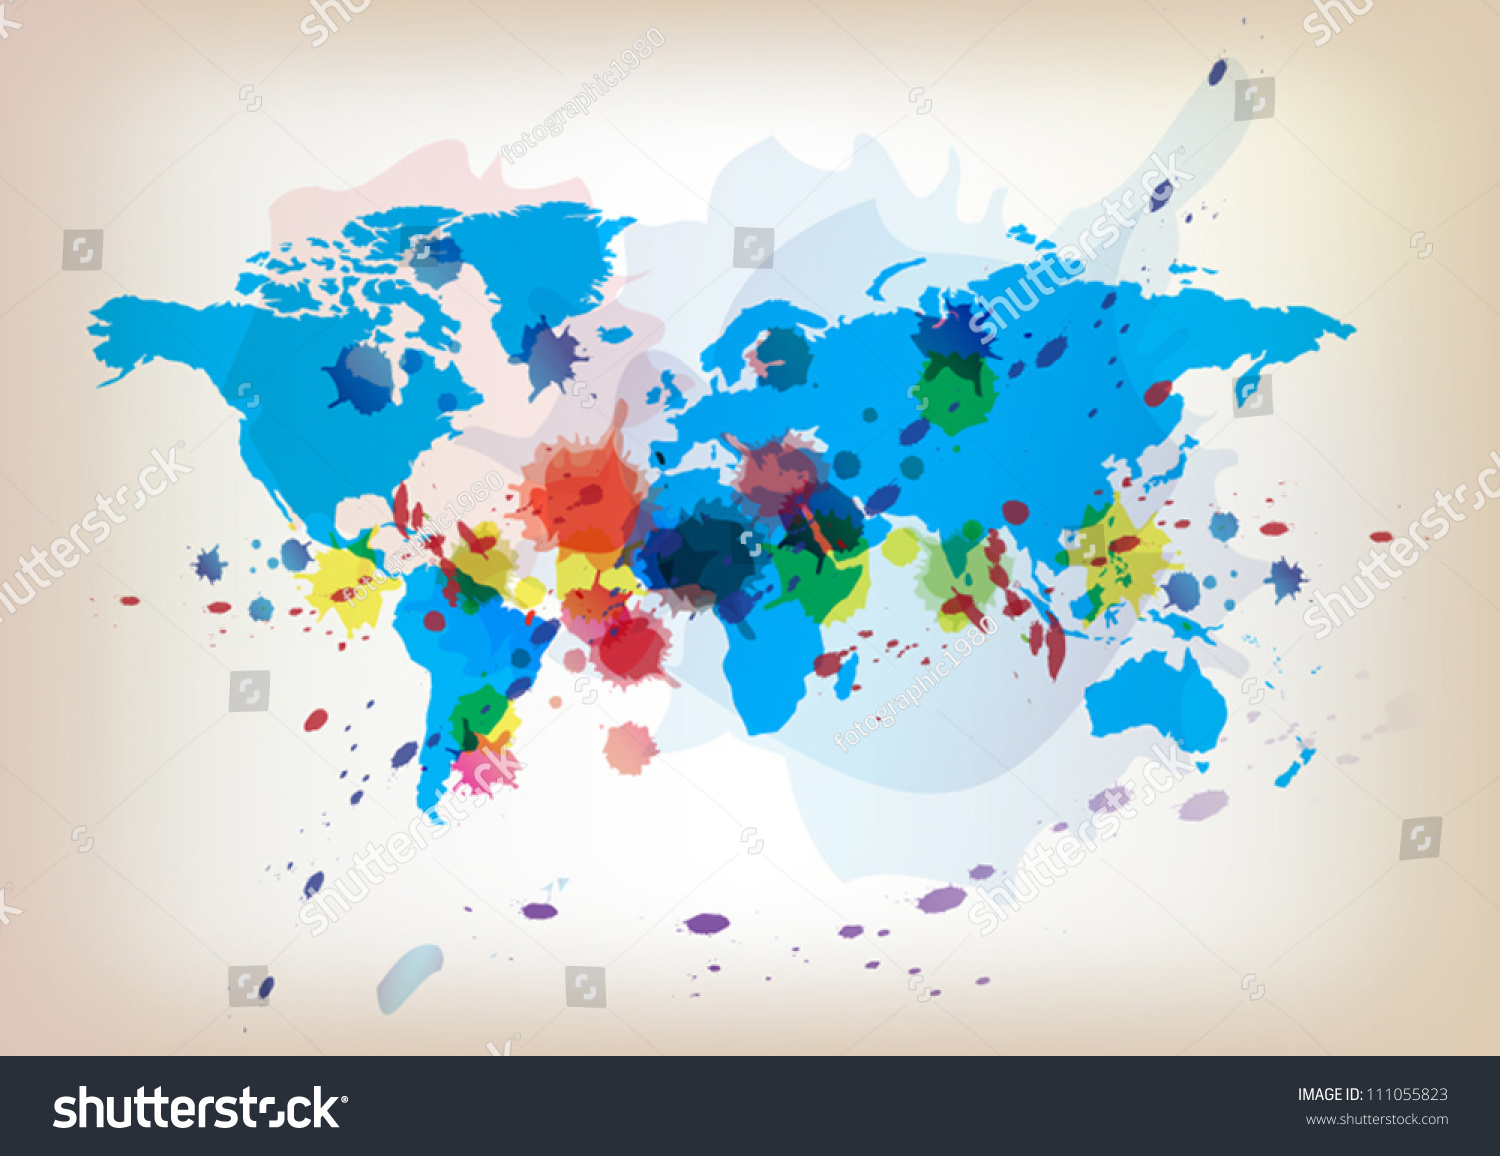 Vector world map background watercolor paint vector de vector world map background watercolor paint vector de stock111055823 shutterstock gumiabroncs Image collections